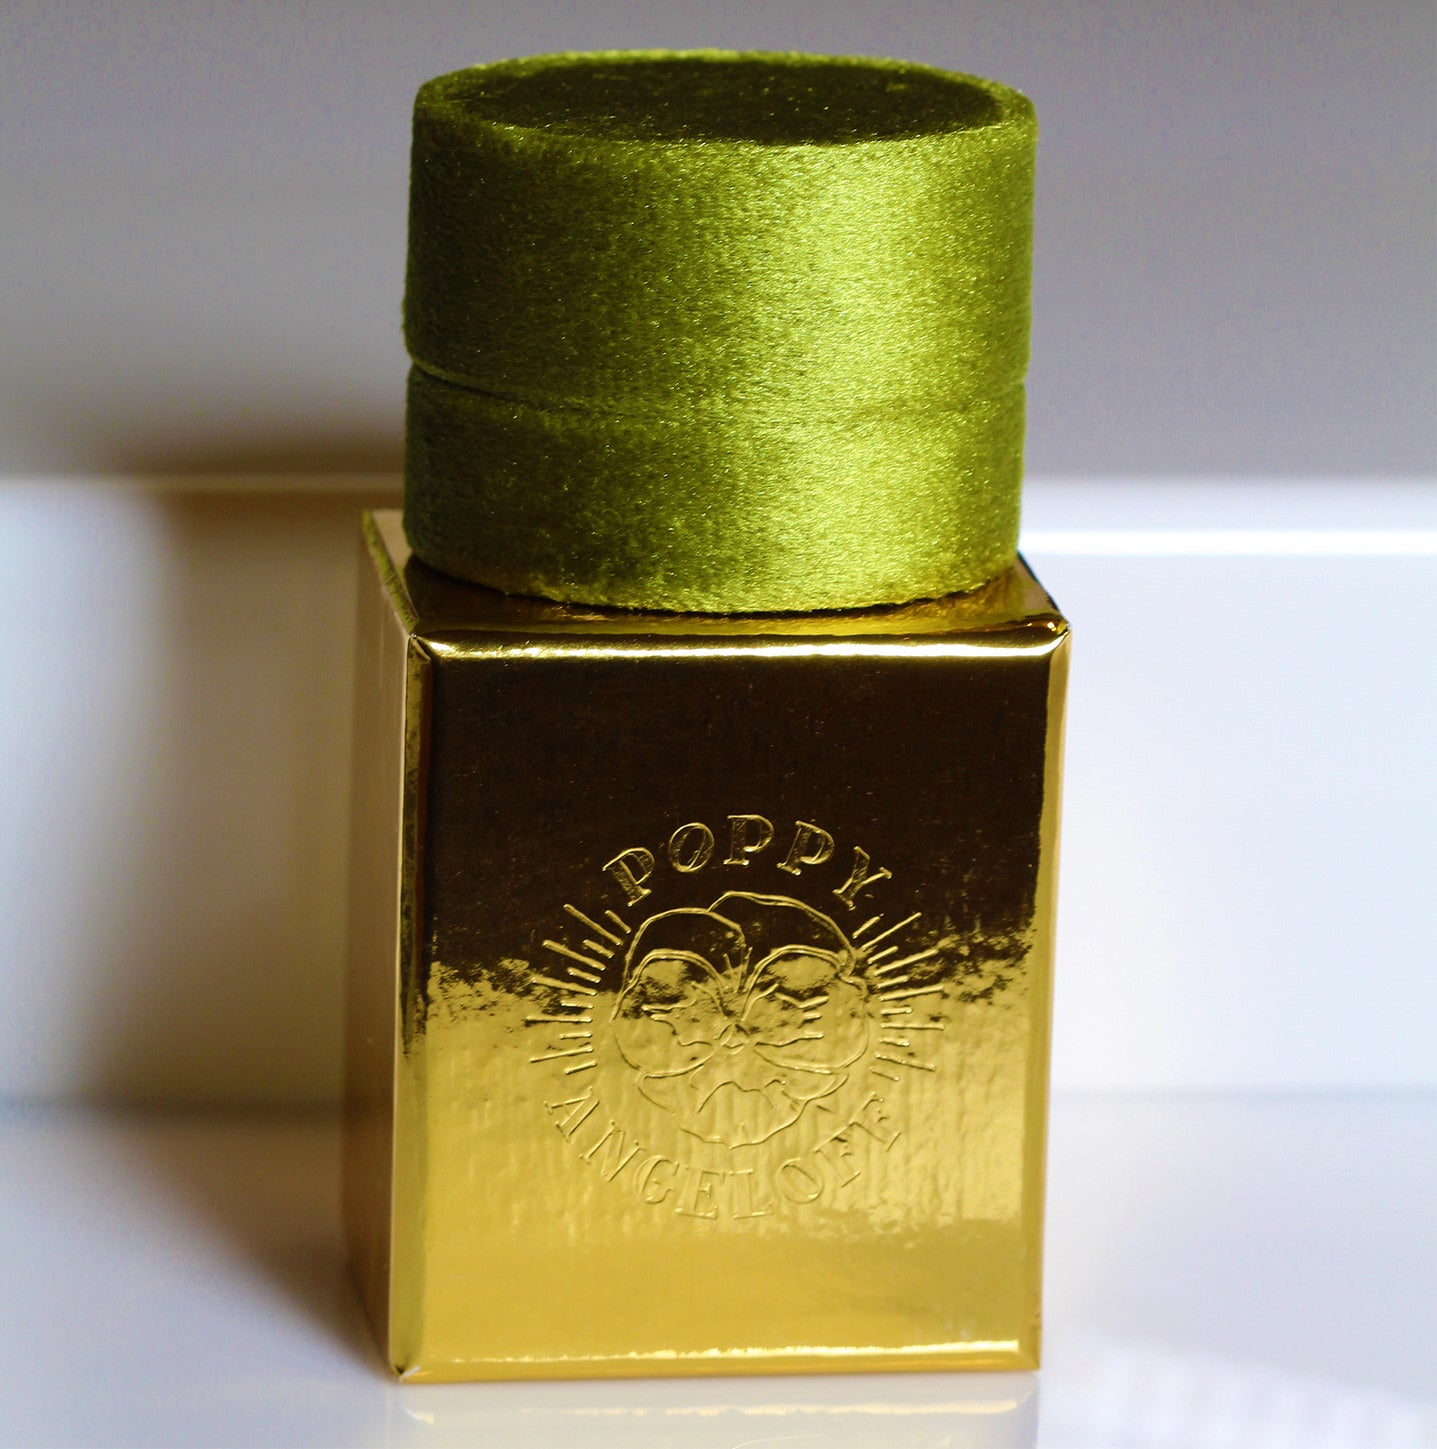 The Silver-of-Gold Gift Box